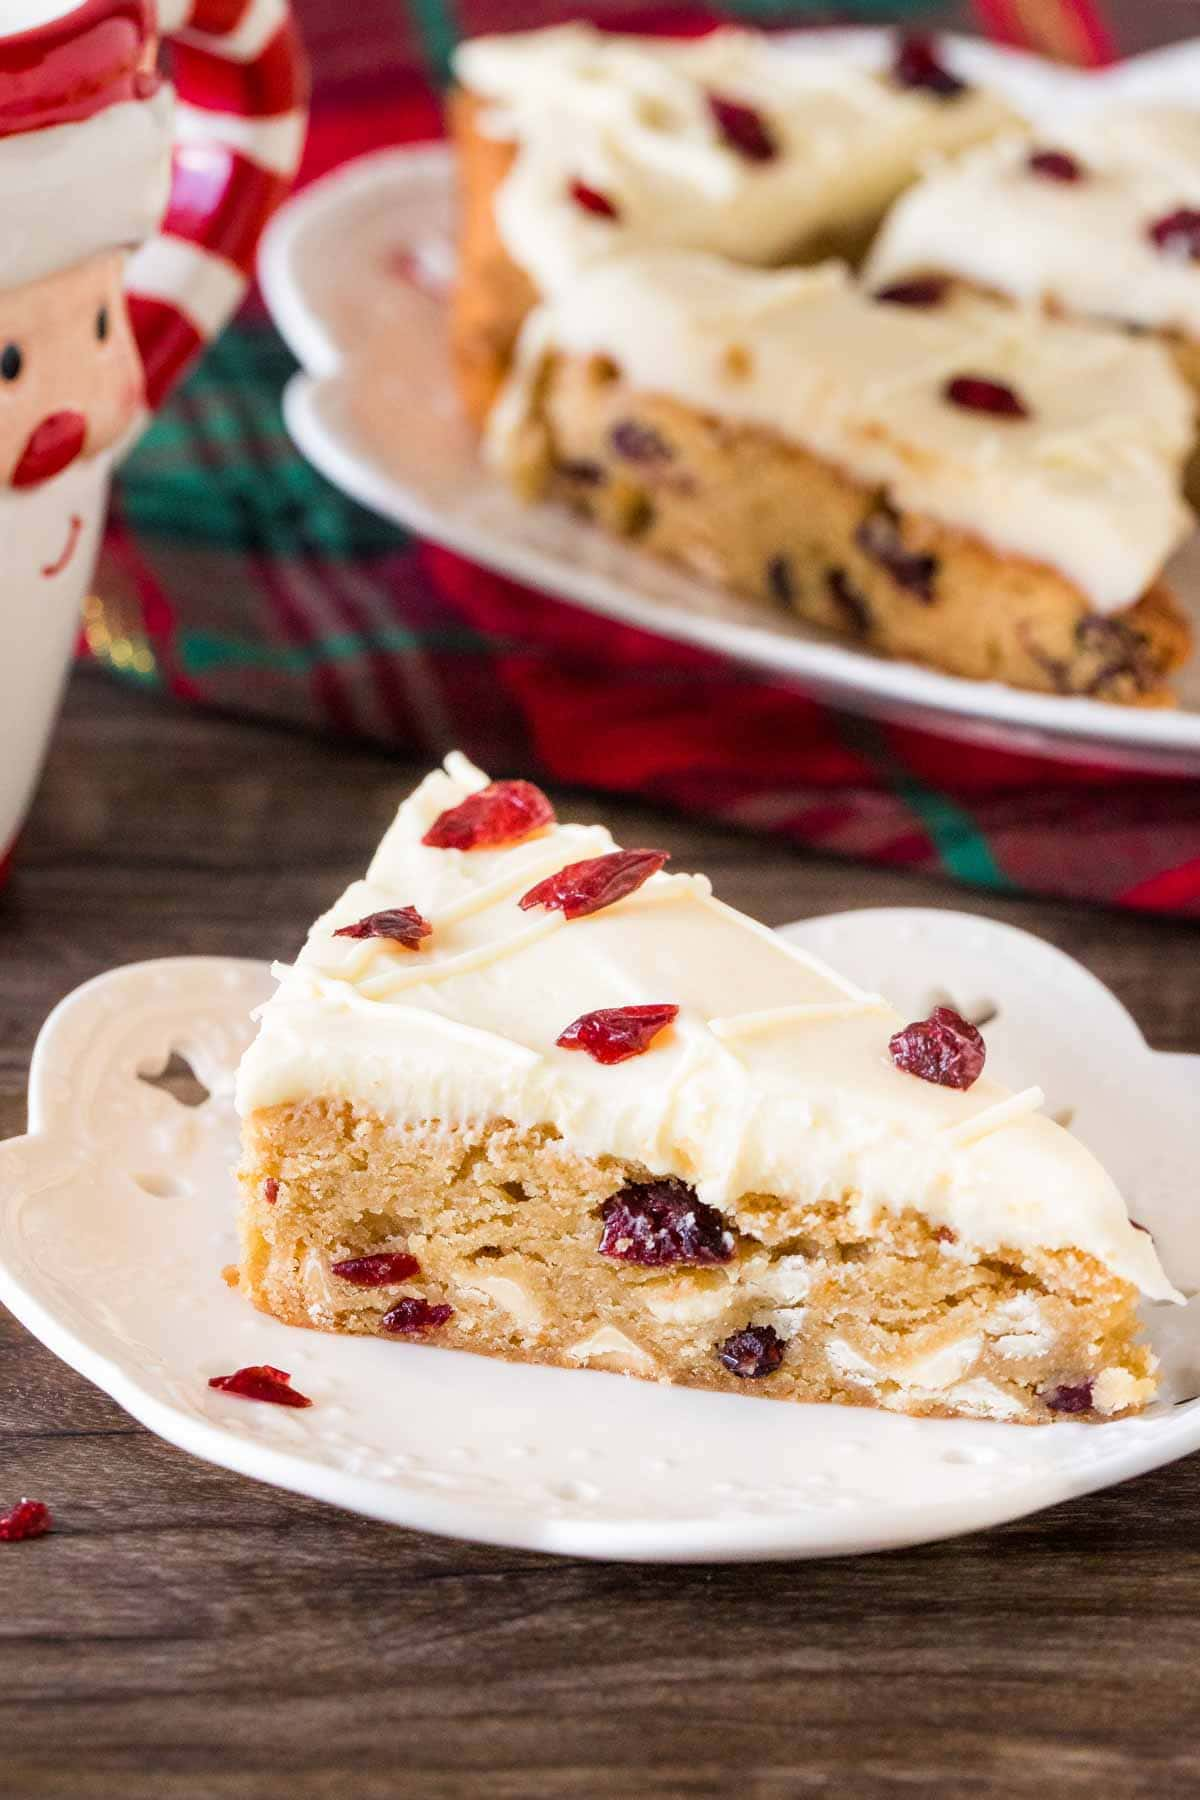 Slice of cranberry bar with cream cheese frosting